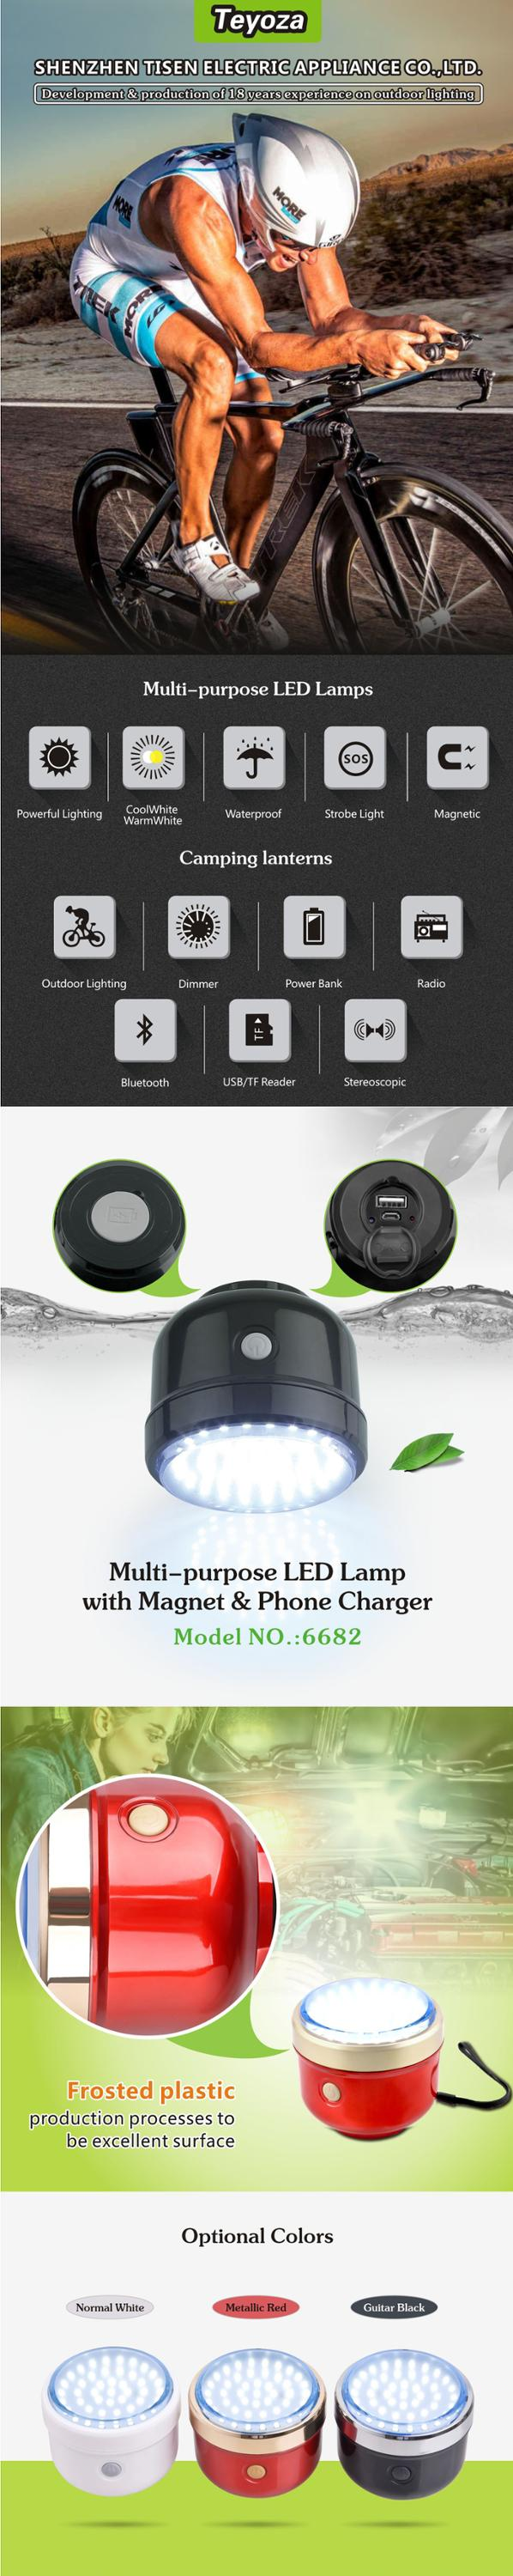 Cool white color temperature aquarium lights item type led coral reef aquarium work light